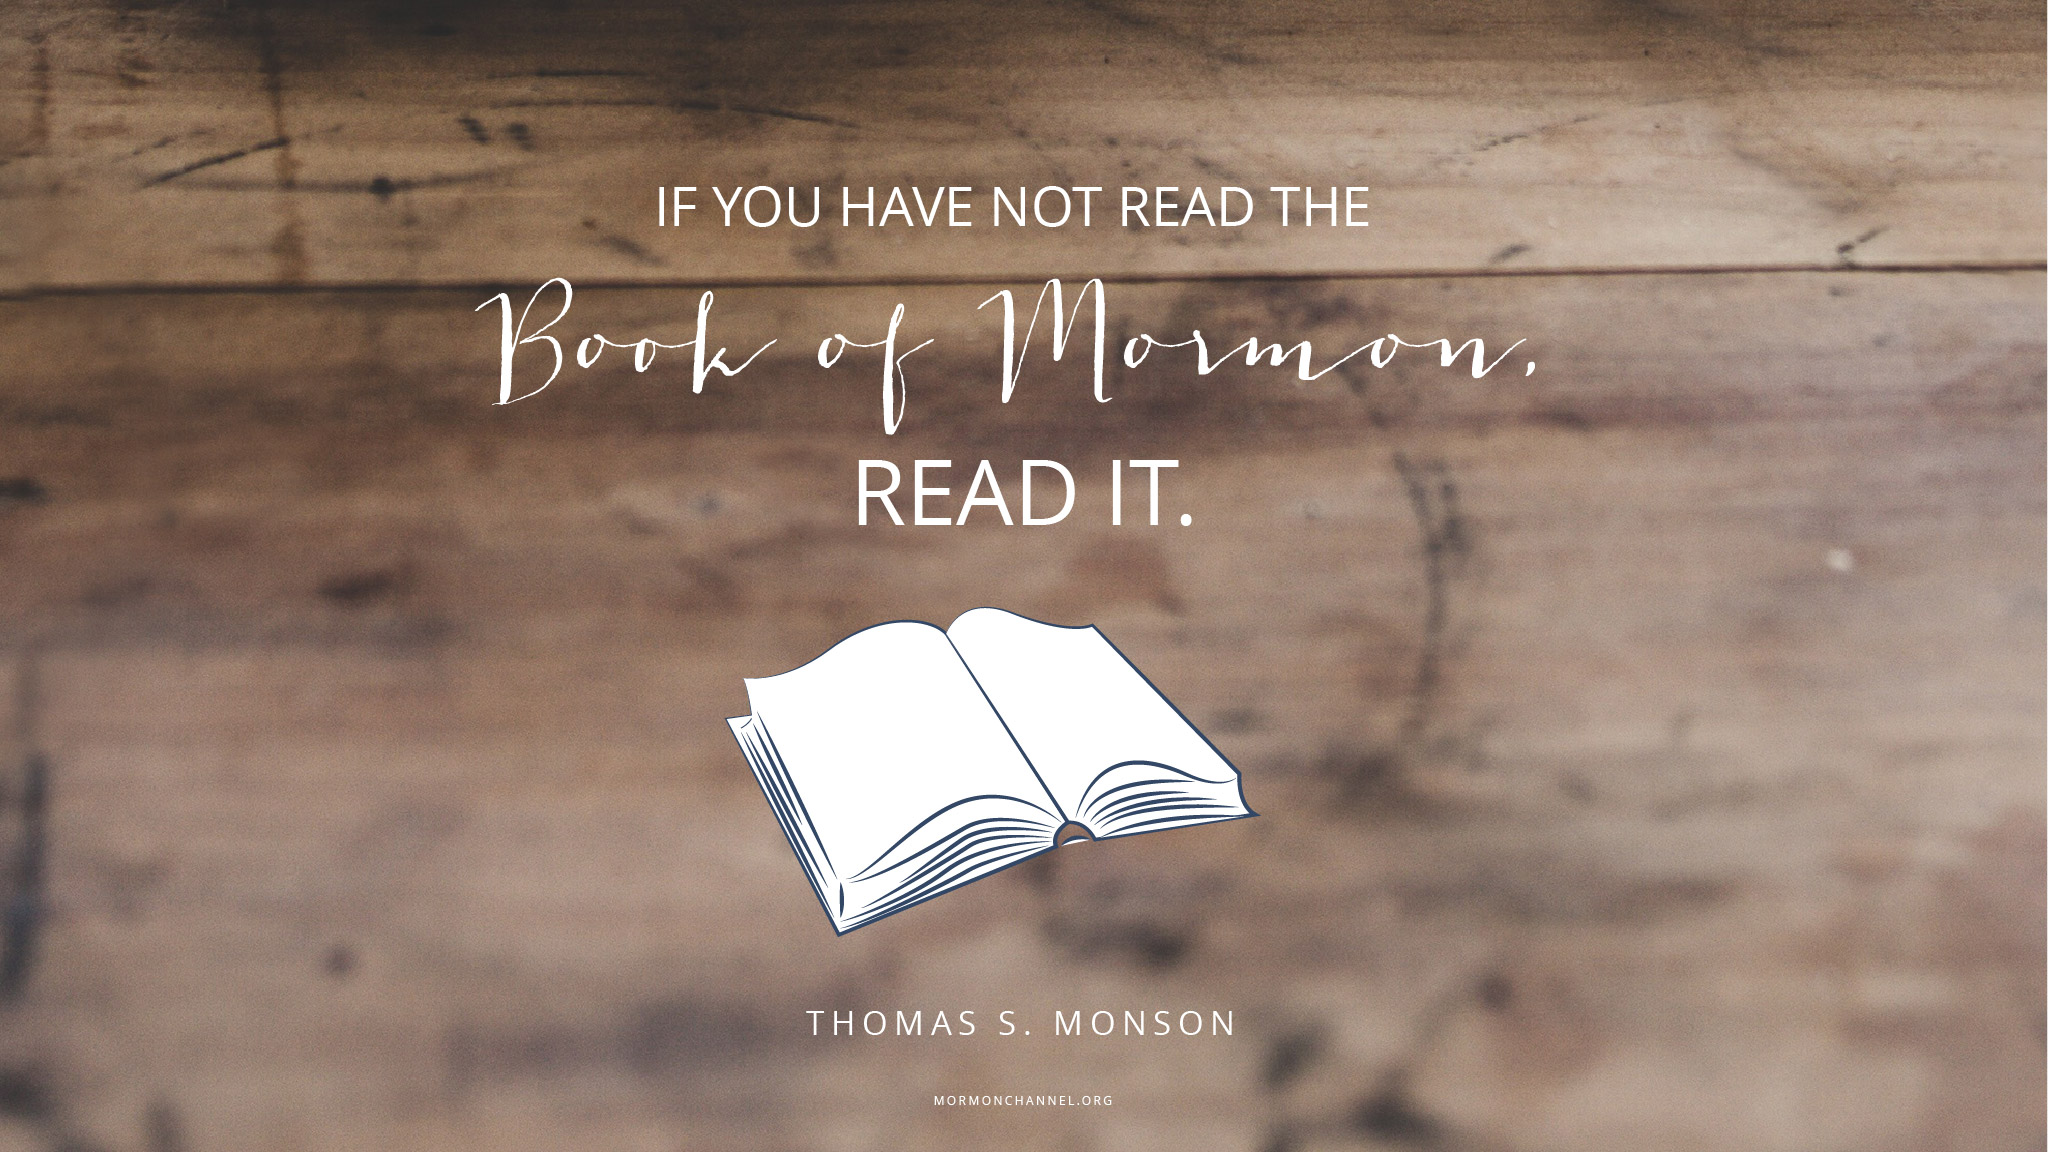 Daily Quote: Book of Mormon | Mormon Channel